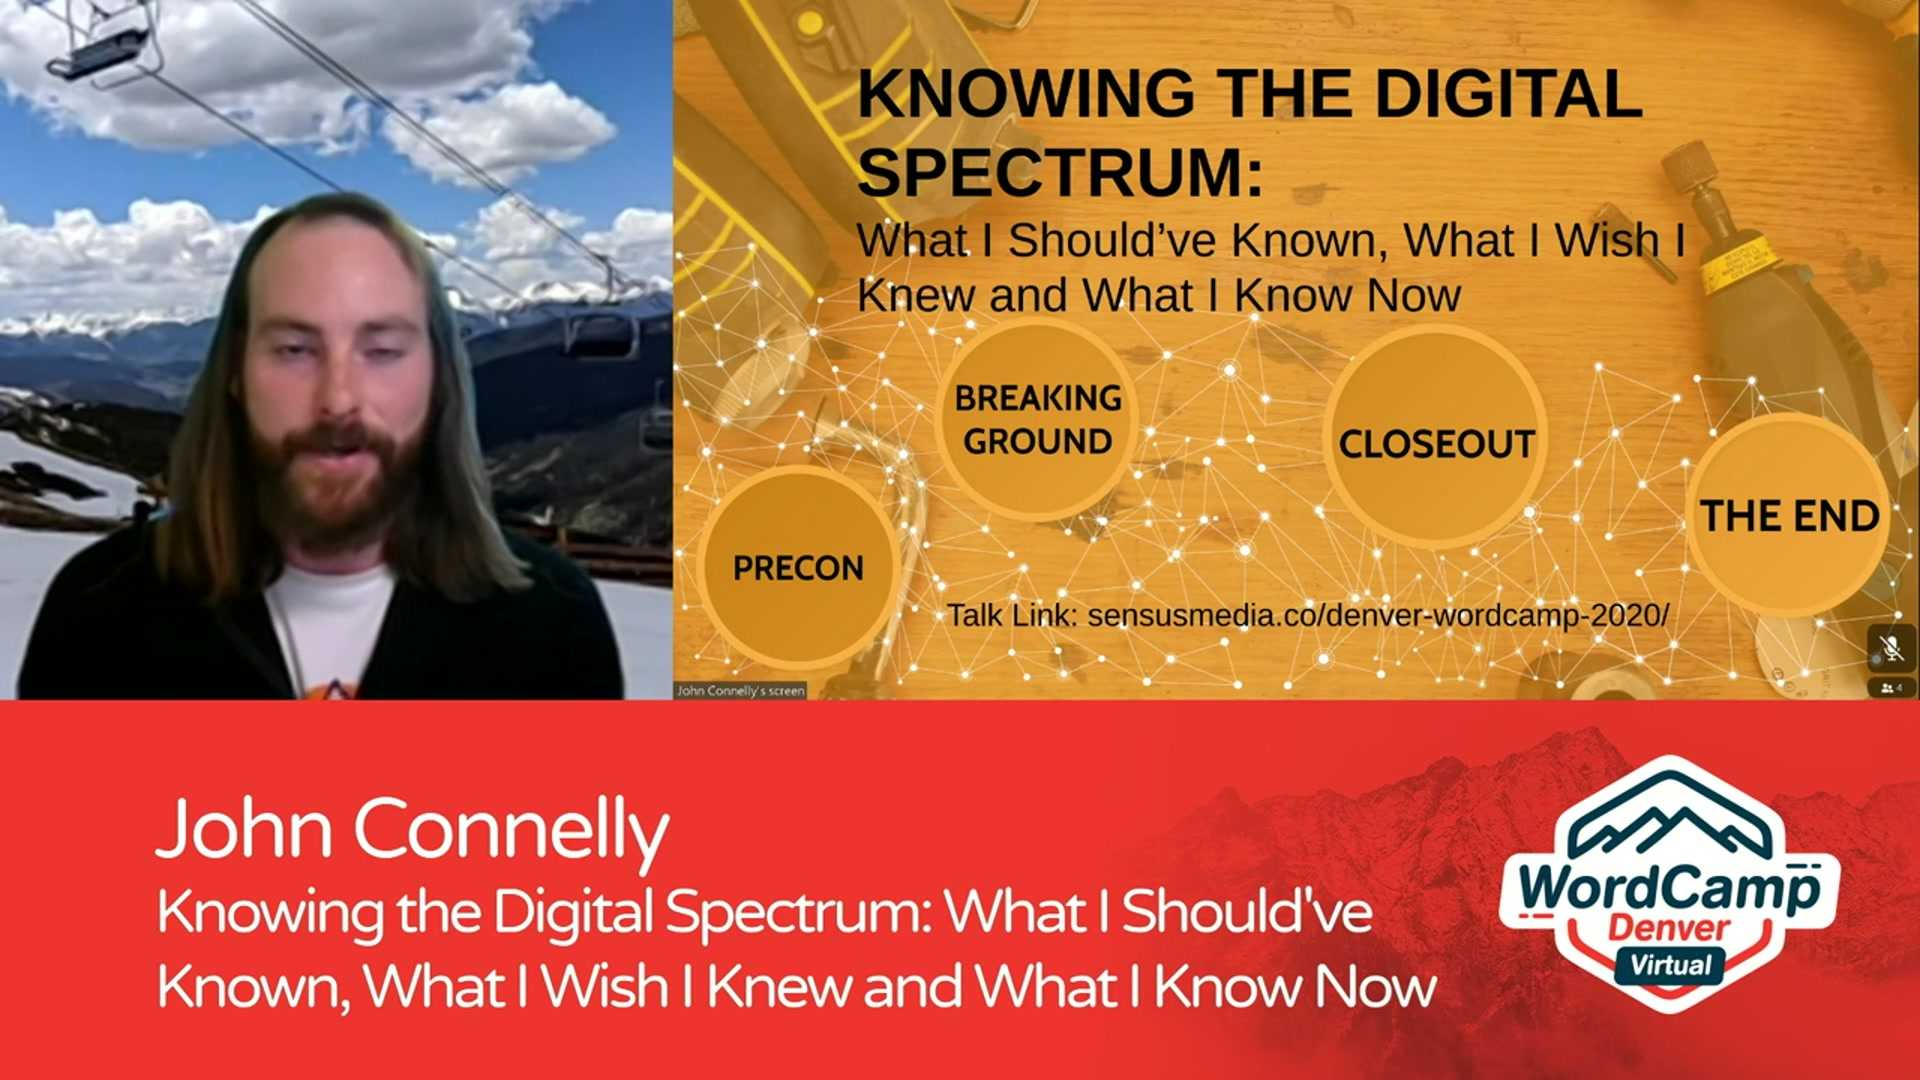 John Connelly: Knowing the Digital Spectrum – What I Should've Known, What I Wish I Knew and What I Know Now